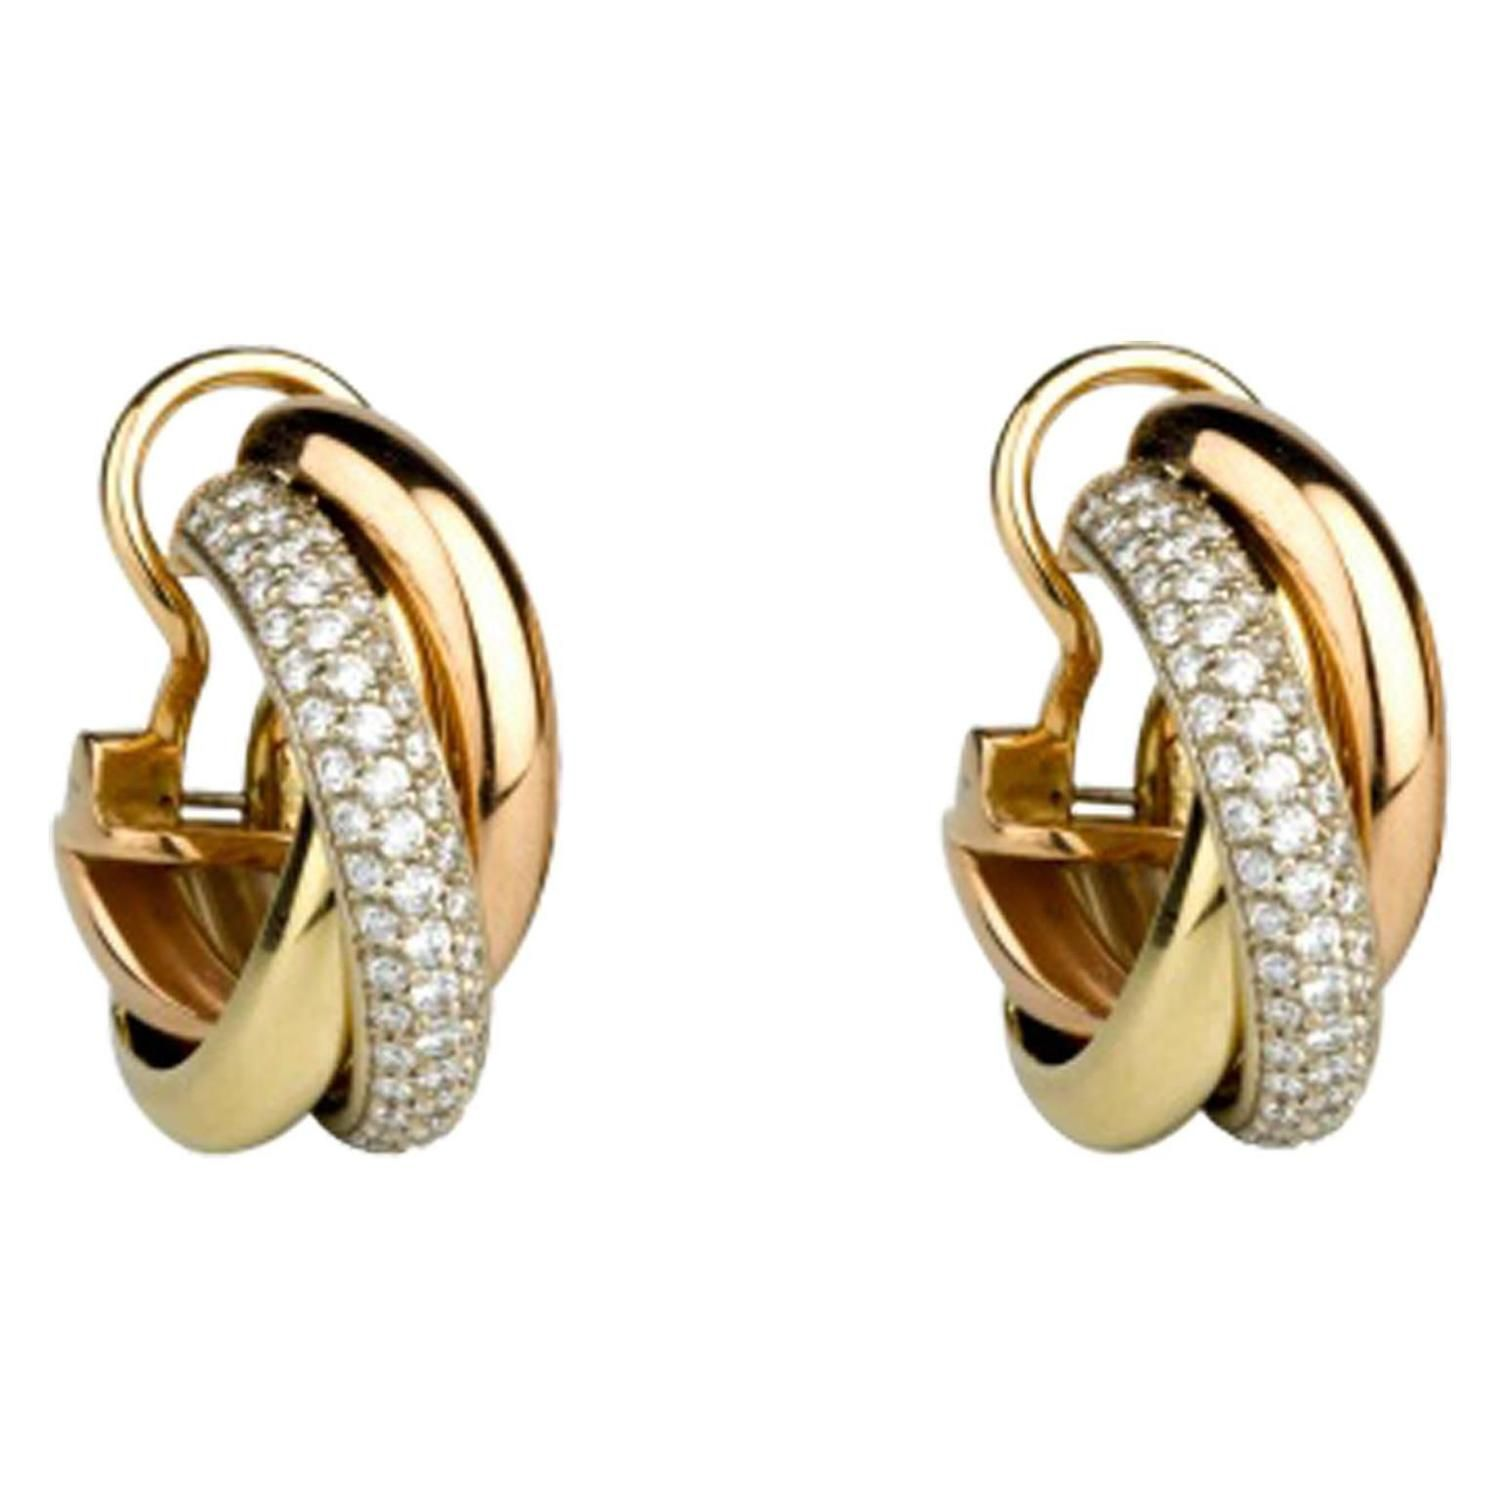 cartier earrings jewelry estate free watches trinity today shipping de product three gold overstock tone